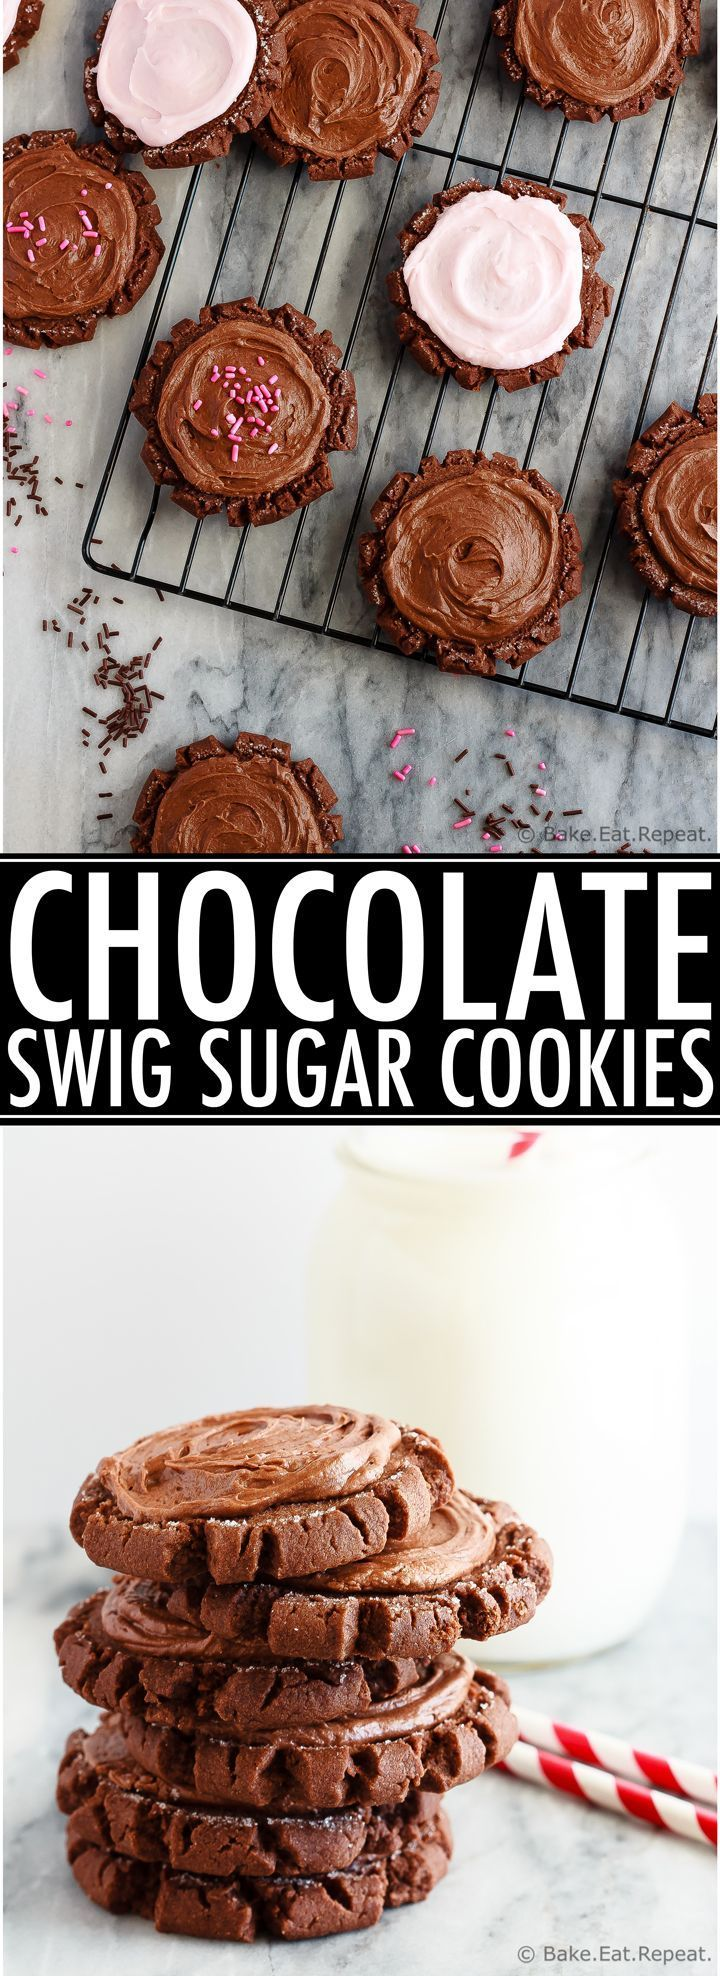 Chocolate Swig sugar cookies - possibly the best sugar cookies I've ever tried!